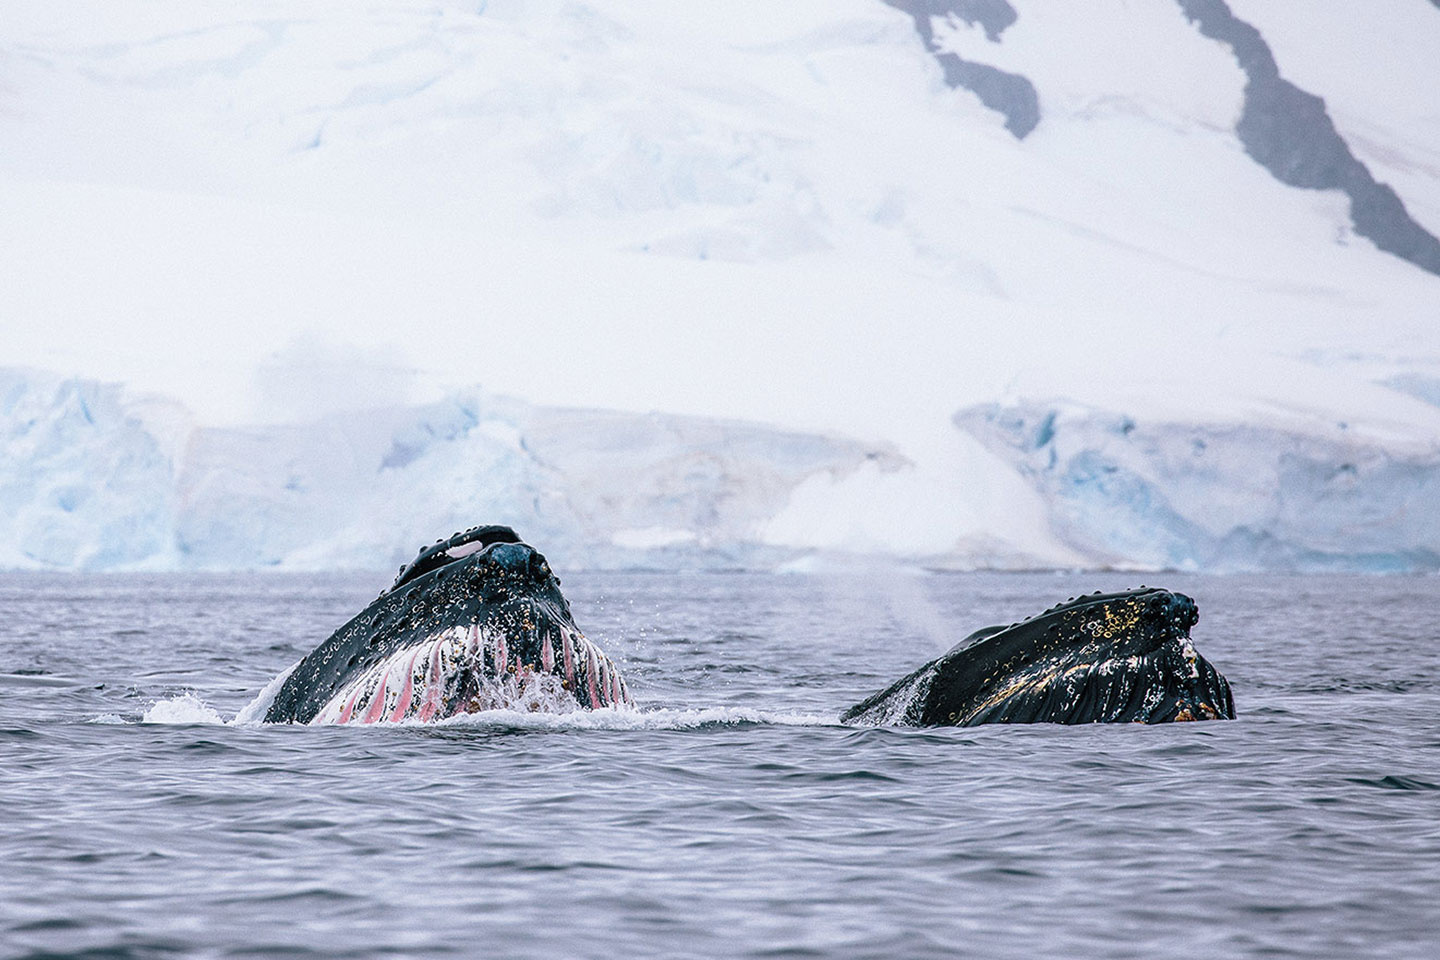 Humpback whales in the Arctic